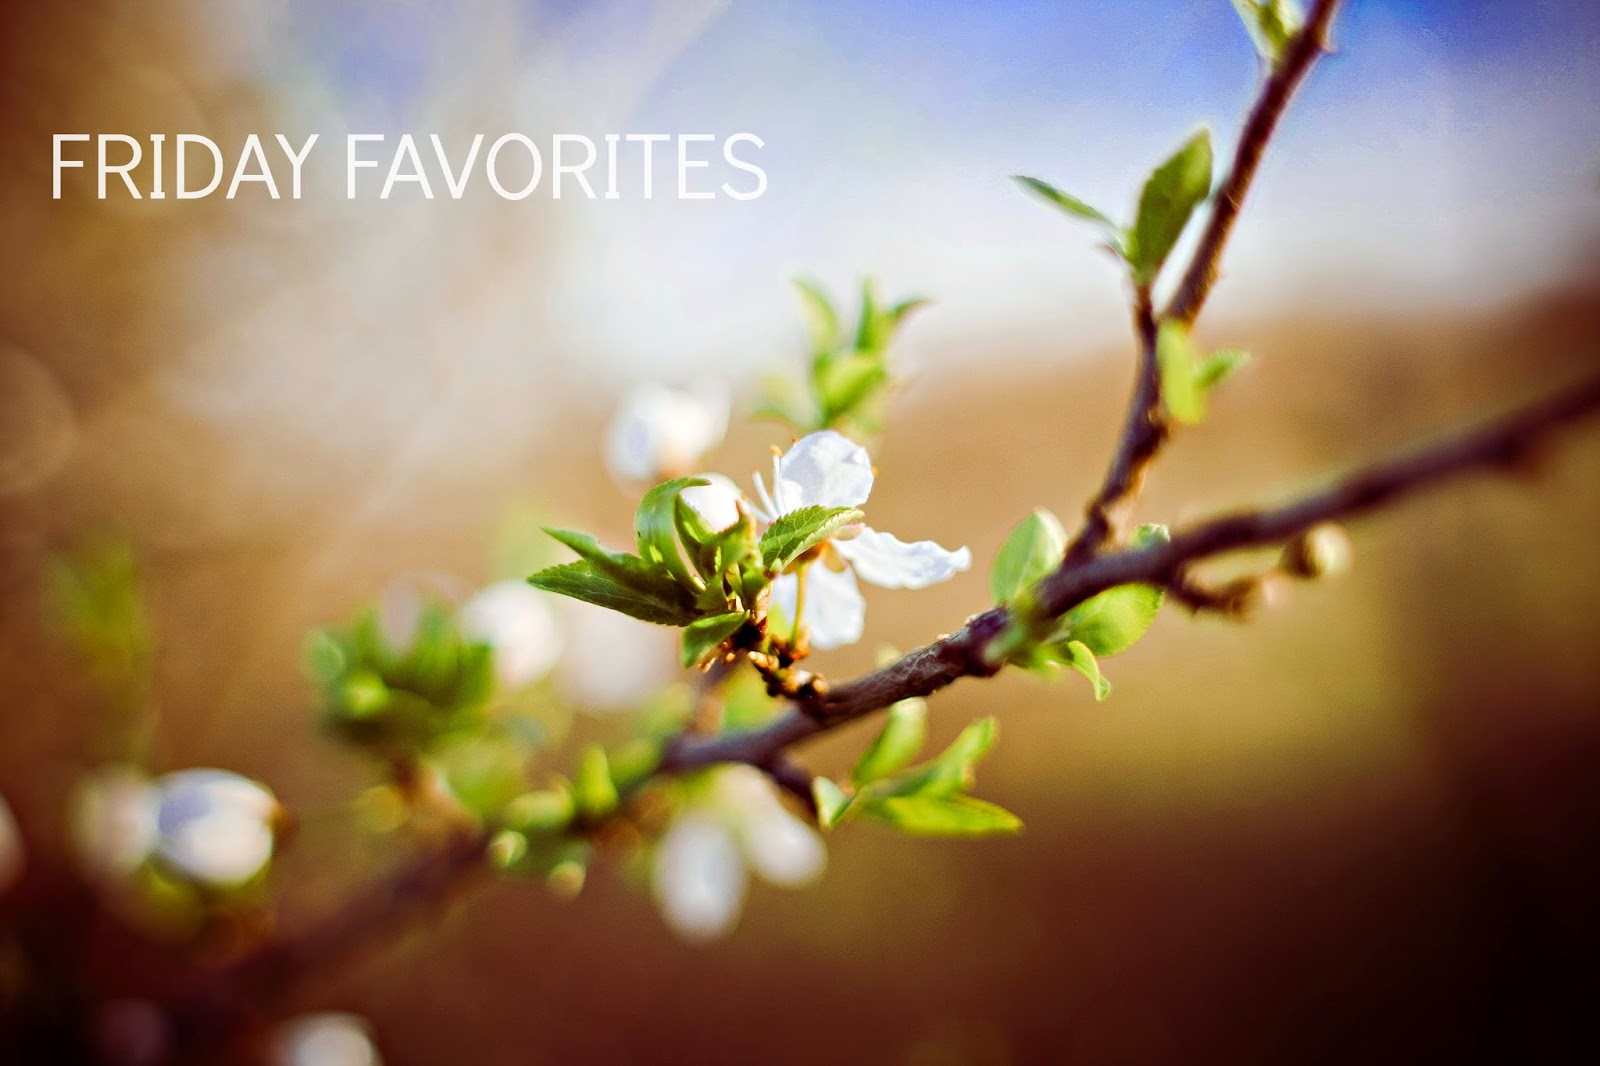 Ioanna's Notebook - Friday Favorites April 2015